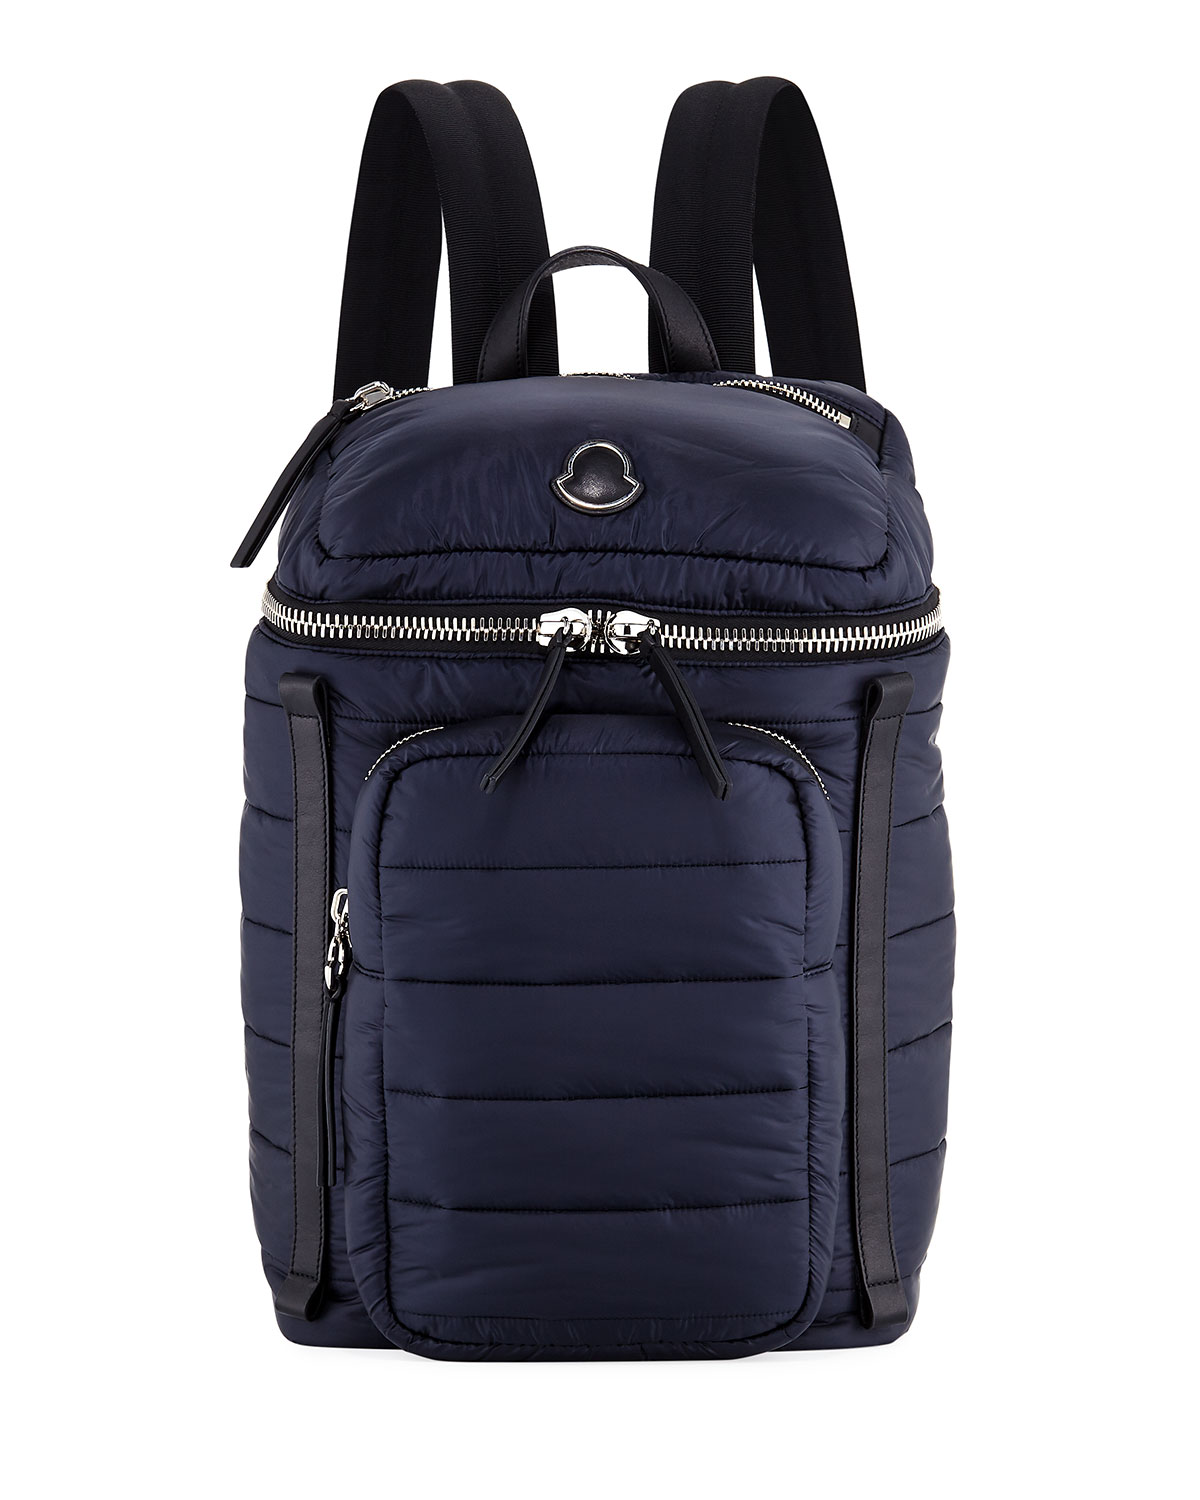 705a8927791c Moncler New Yannick Zaino Quilted Backpack | Neiman Marcus